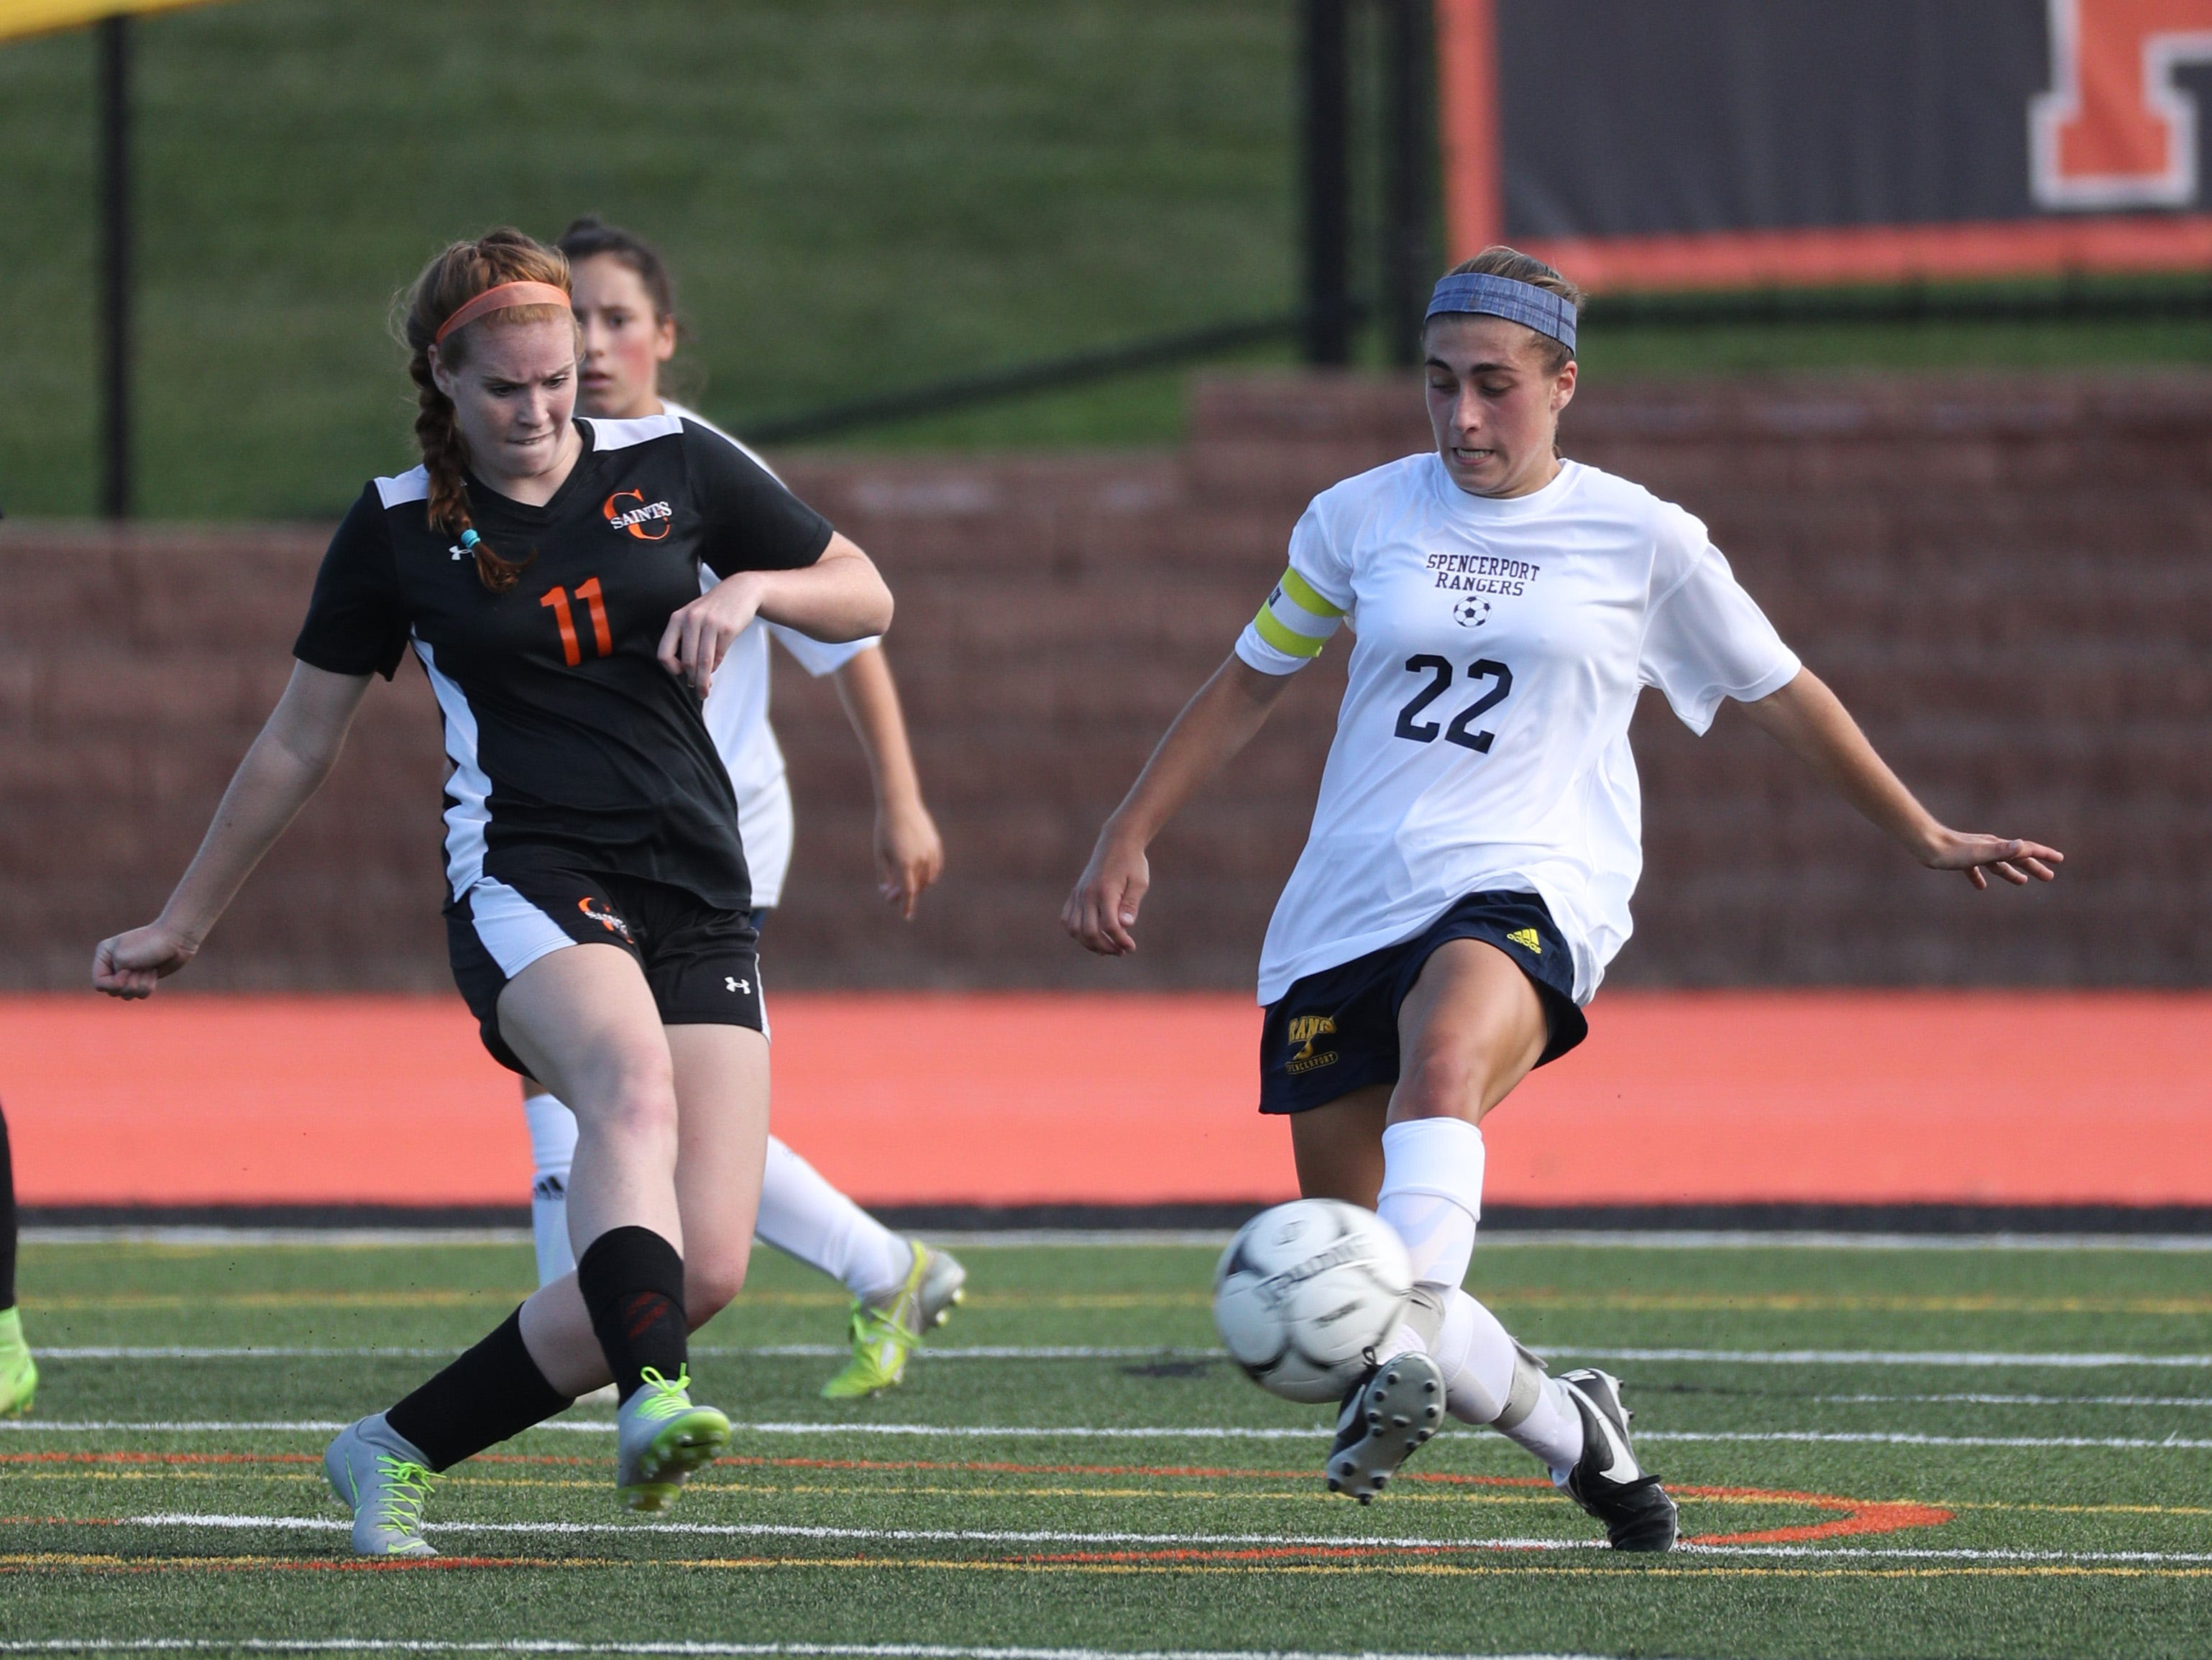 Spencerport's Olivia Wall clears the ball away from Churchville-Chili's Courtney Curley.